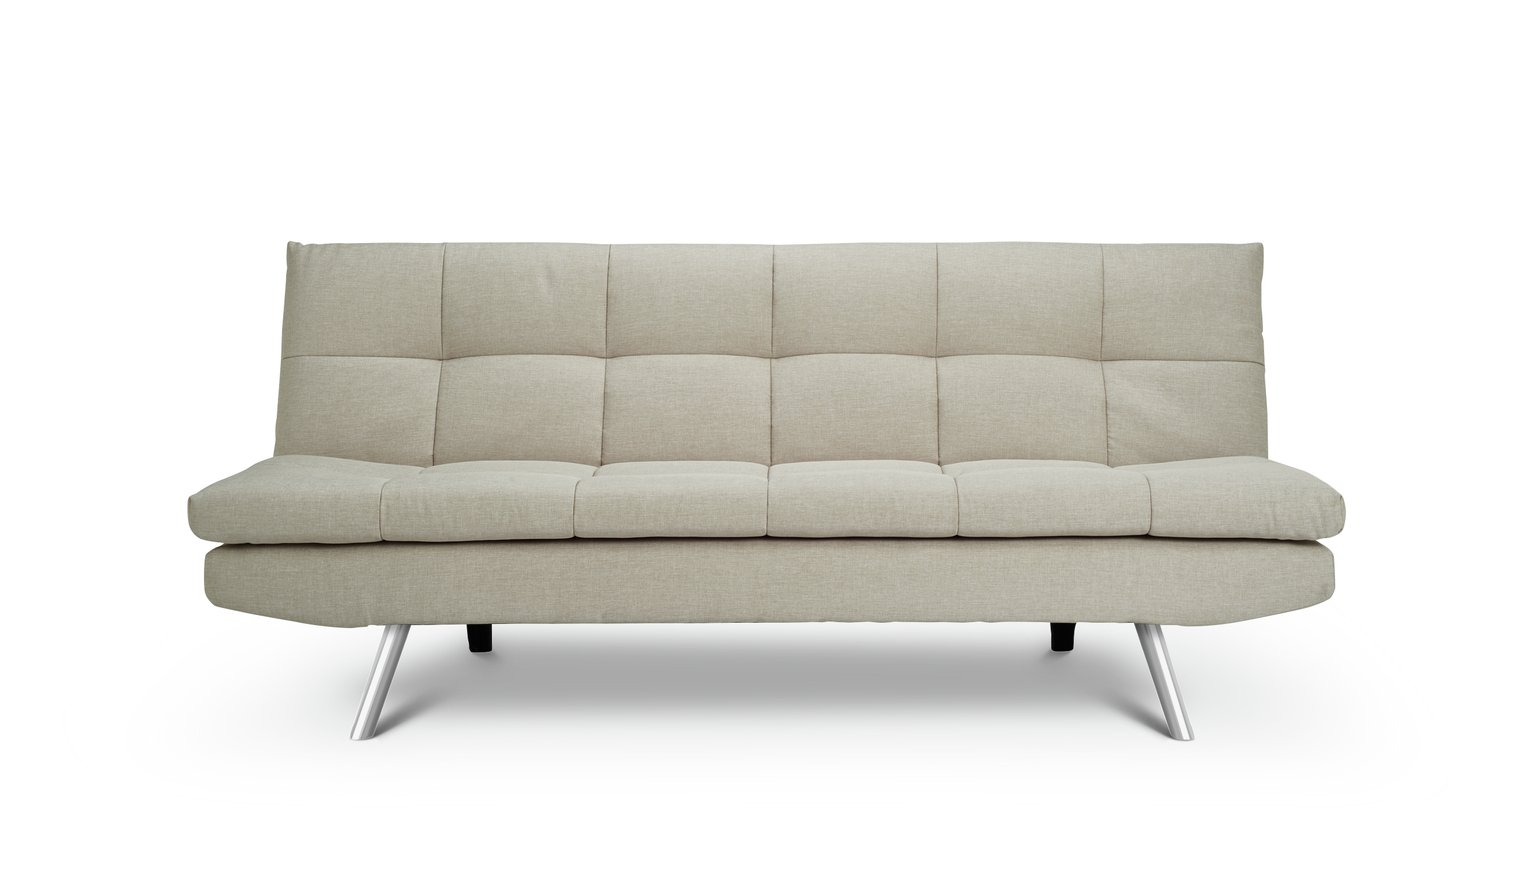 collection renley 4 seater fabric sofa light grey for. Black Bedroom Furniture Sets. Home Design Ideas